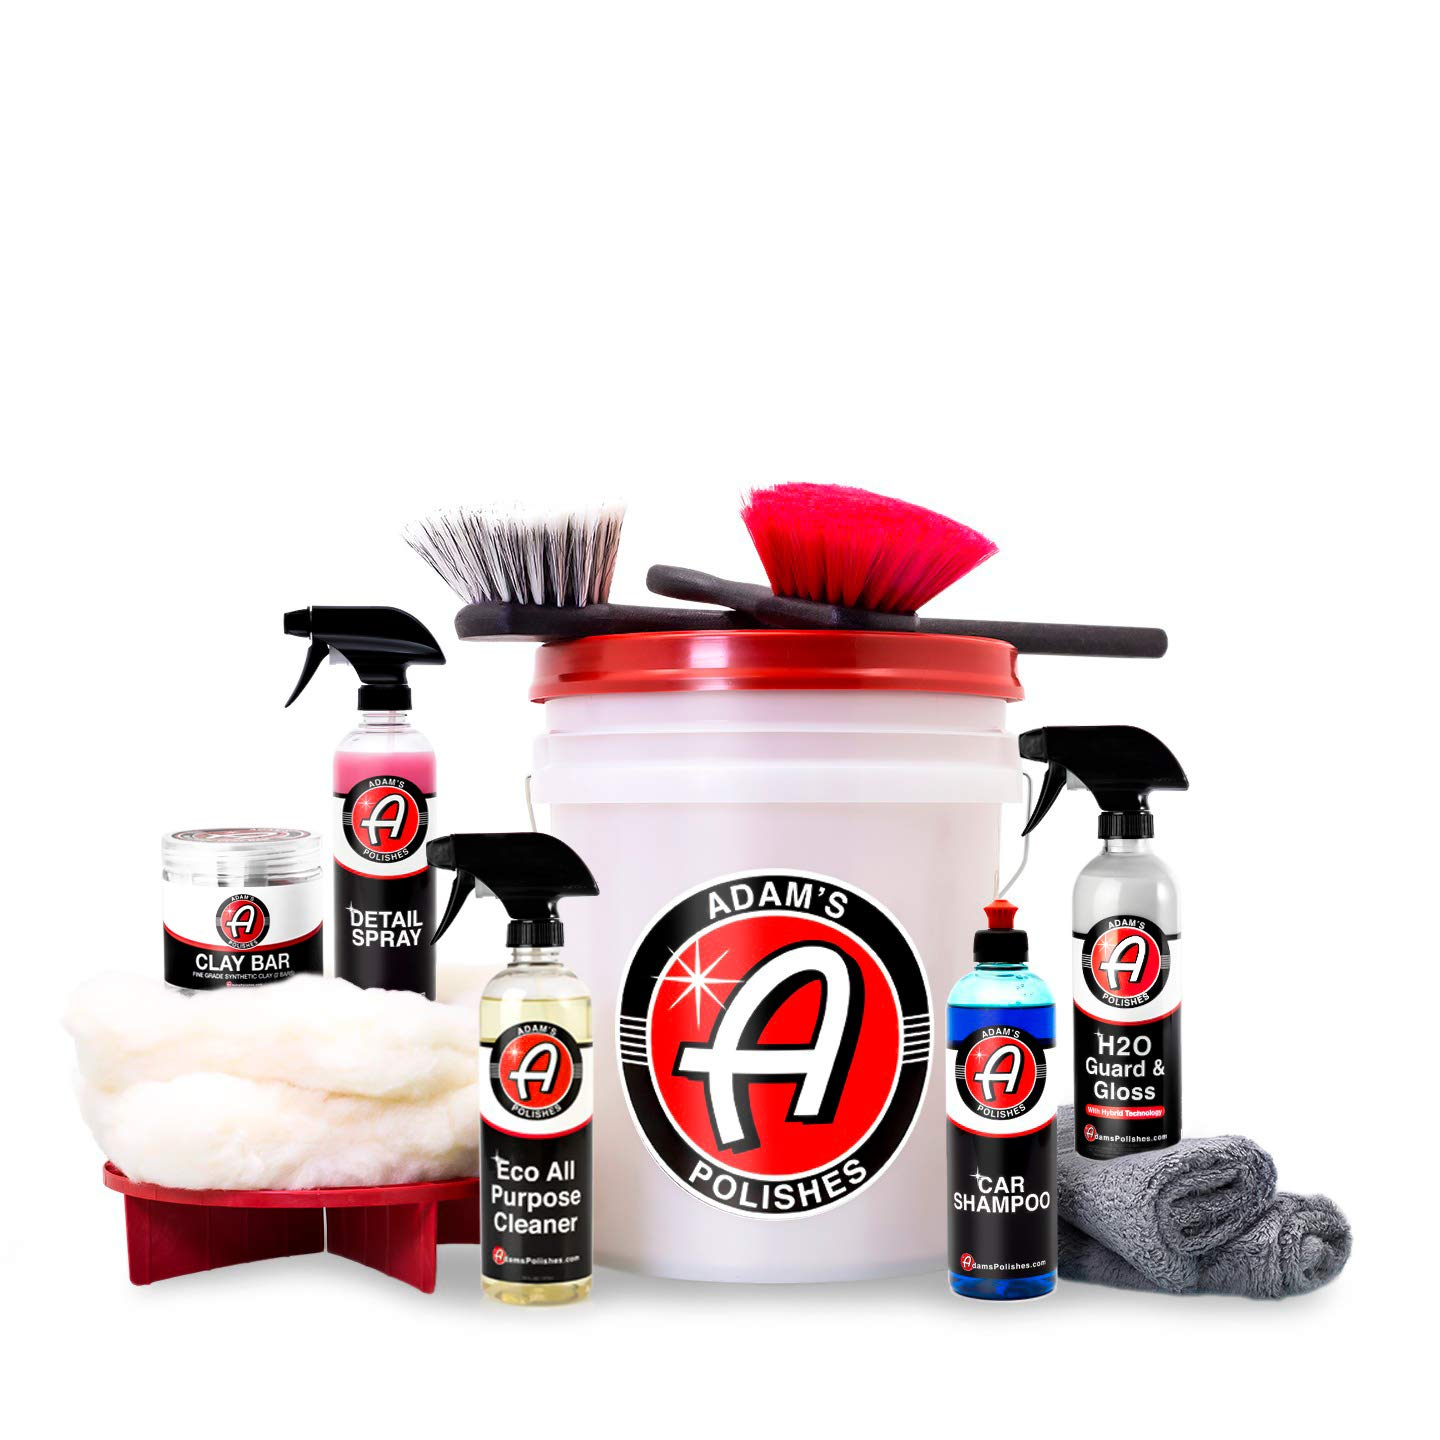 Adam's Daily Driver Detailing Kit - Detail Your Entire Vehicle Efficiently and Effectively - Designed to Clean, Shine, and Protect Your Daily Driver by Adam's Polishes (Image #1)